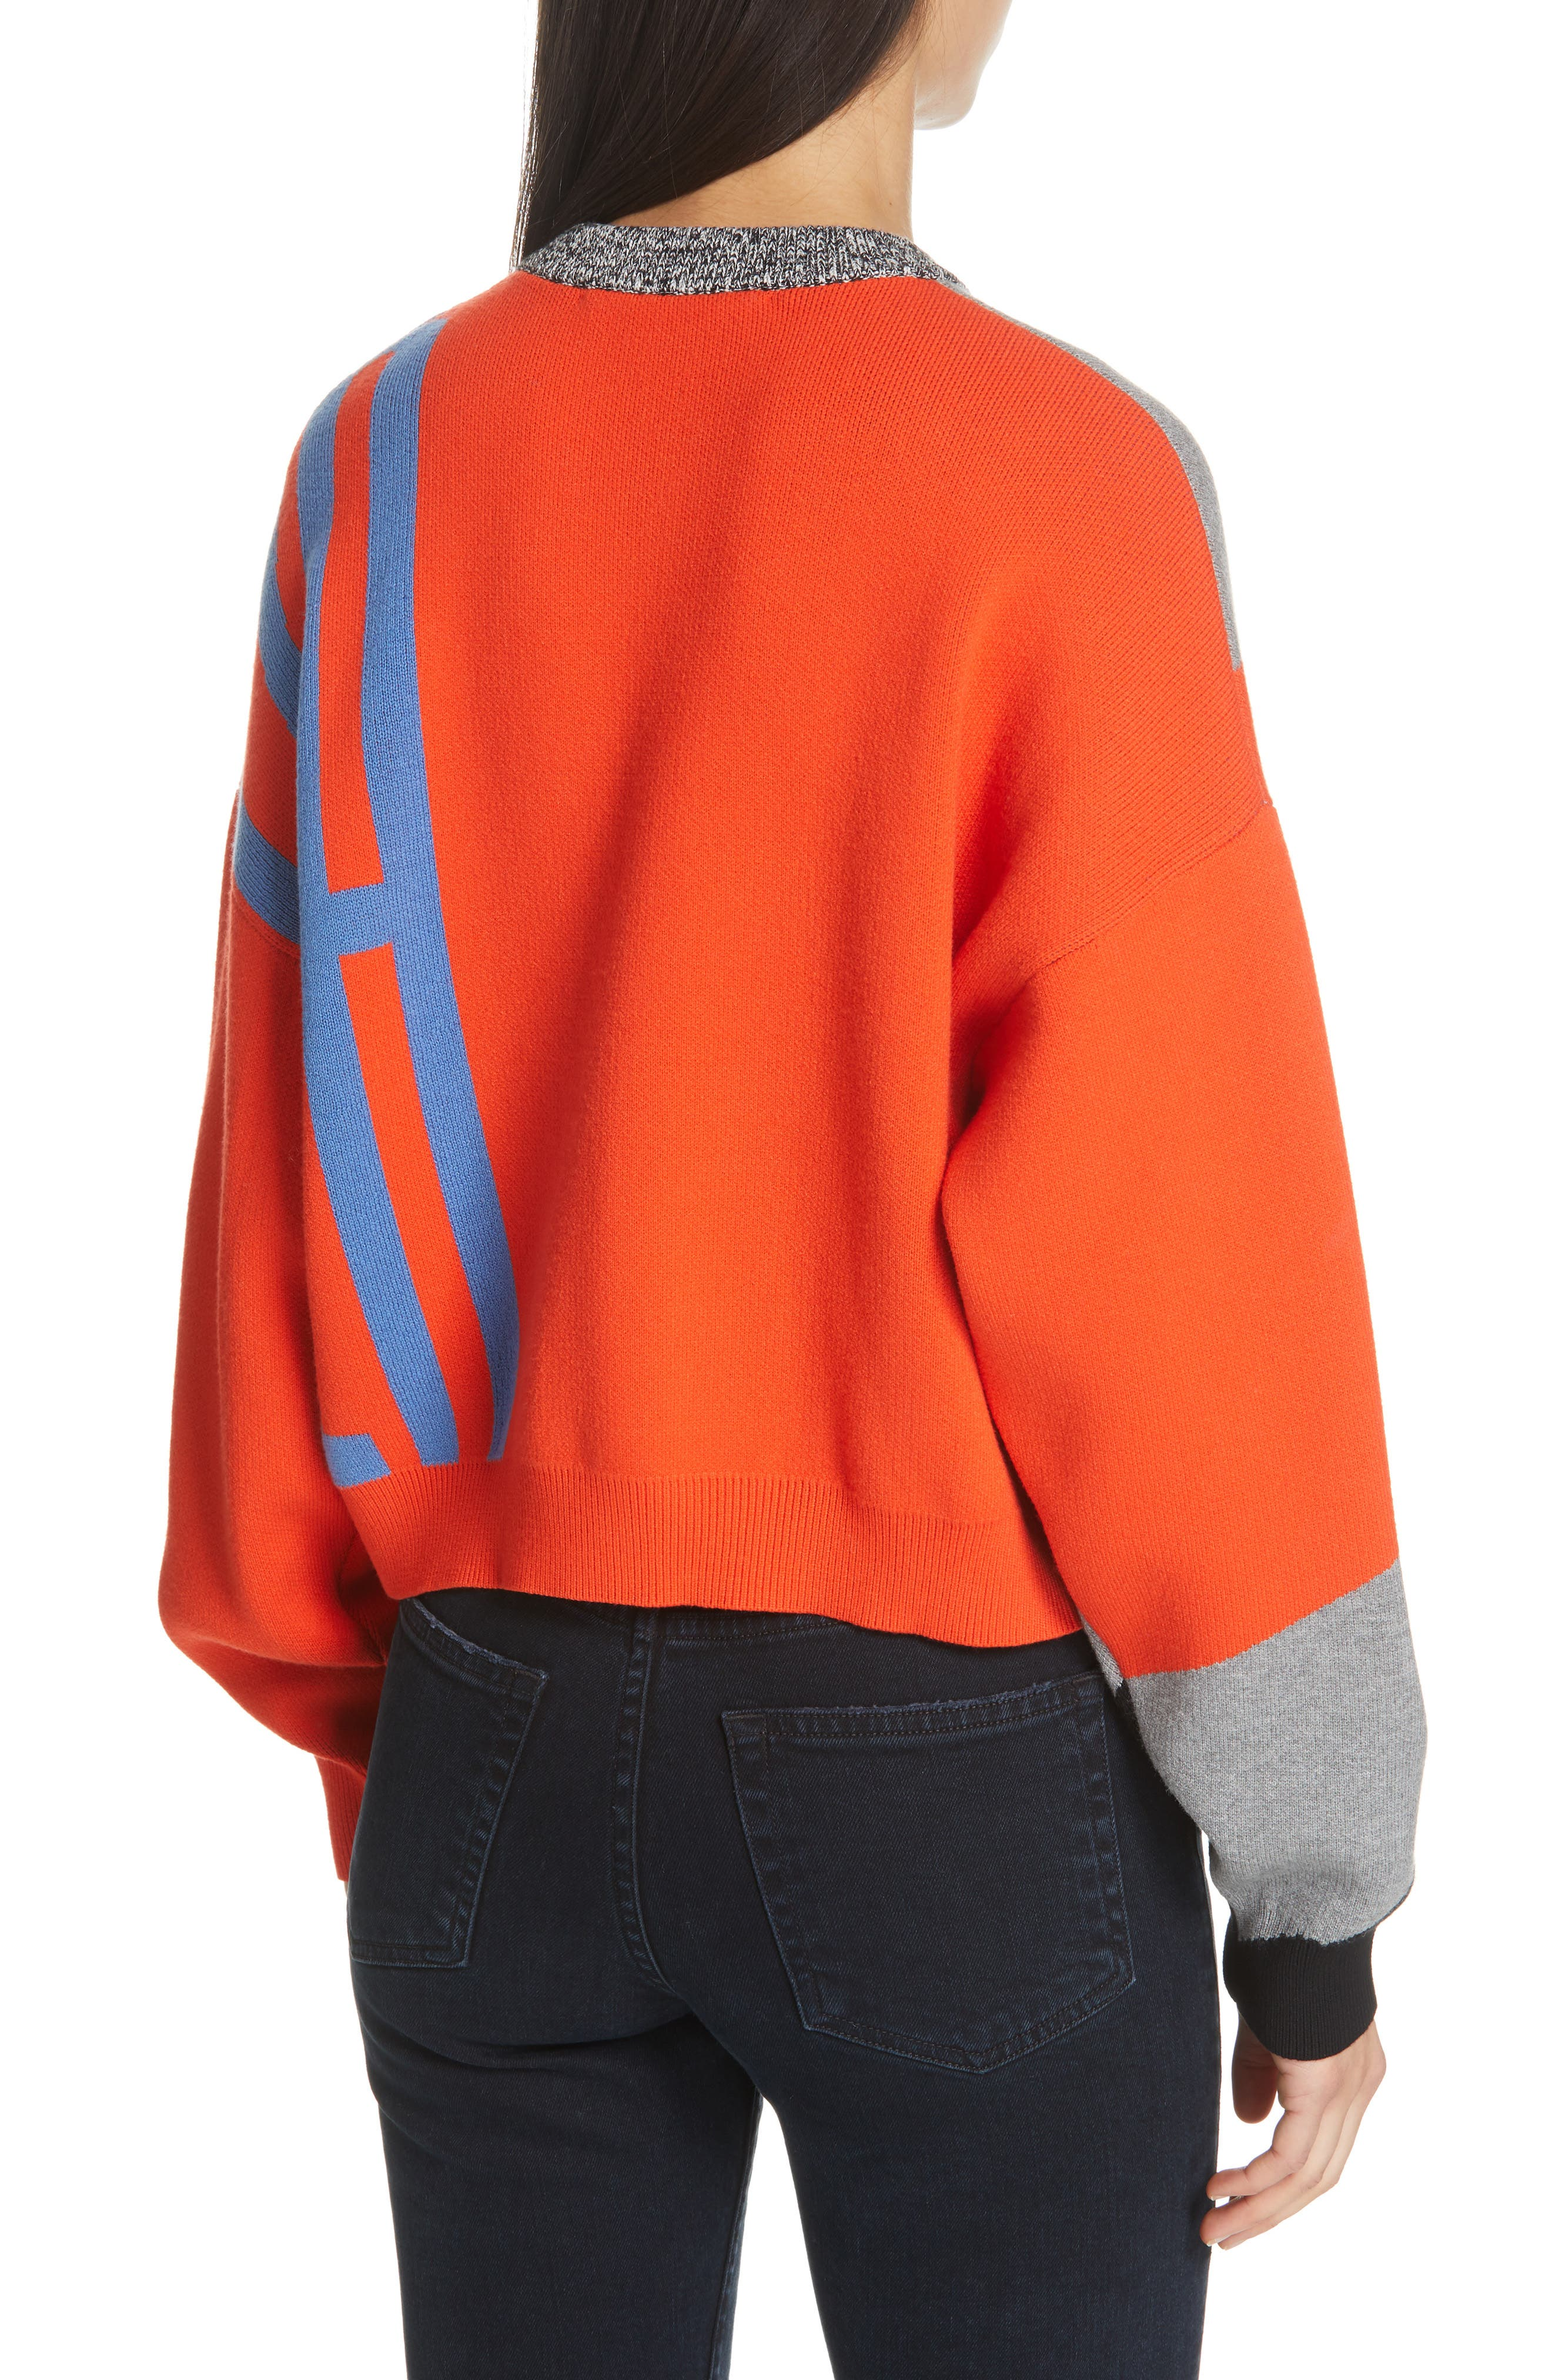 PSWL Graphic Logo Sweater,                             Alternate thumbnail 2, color,                             BRIGHT RED COMBO